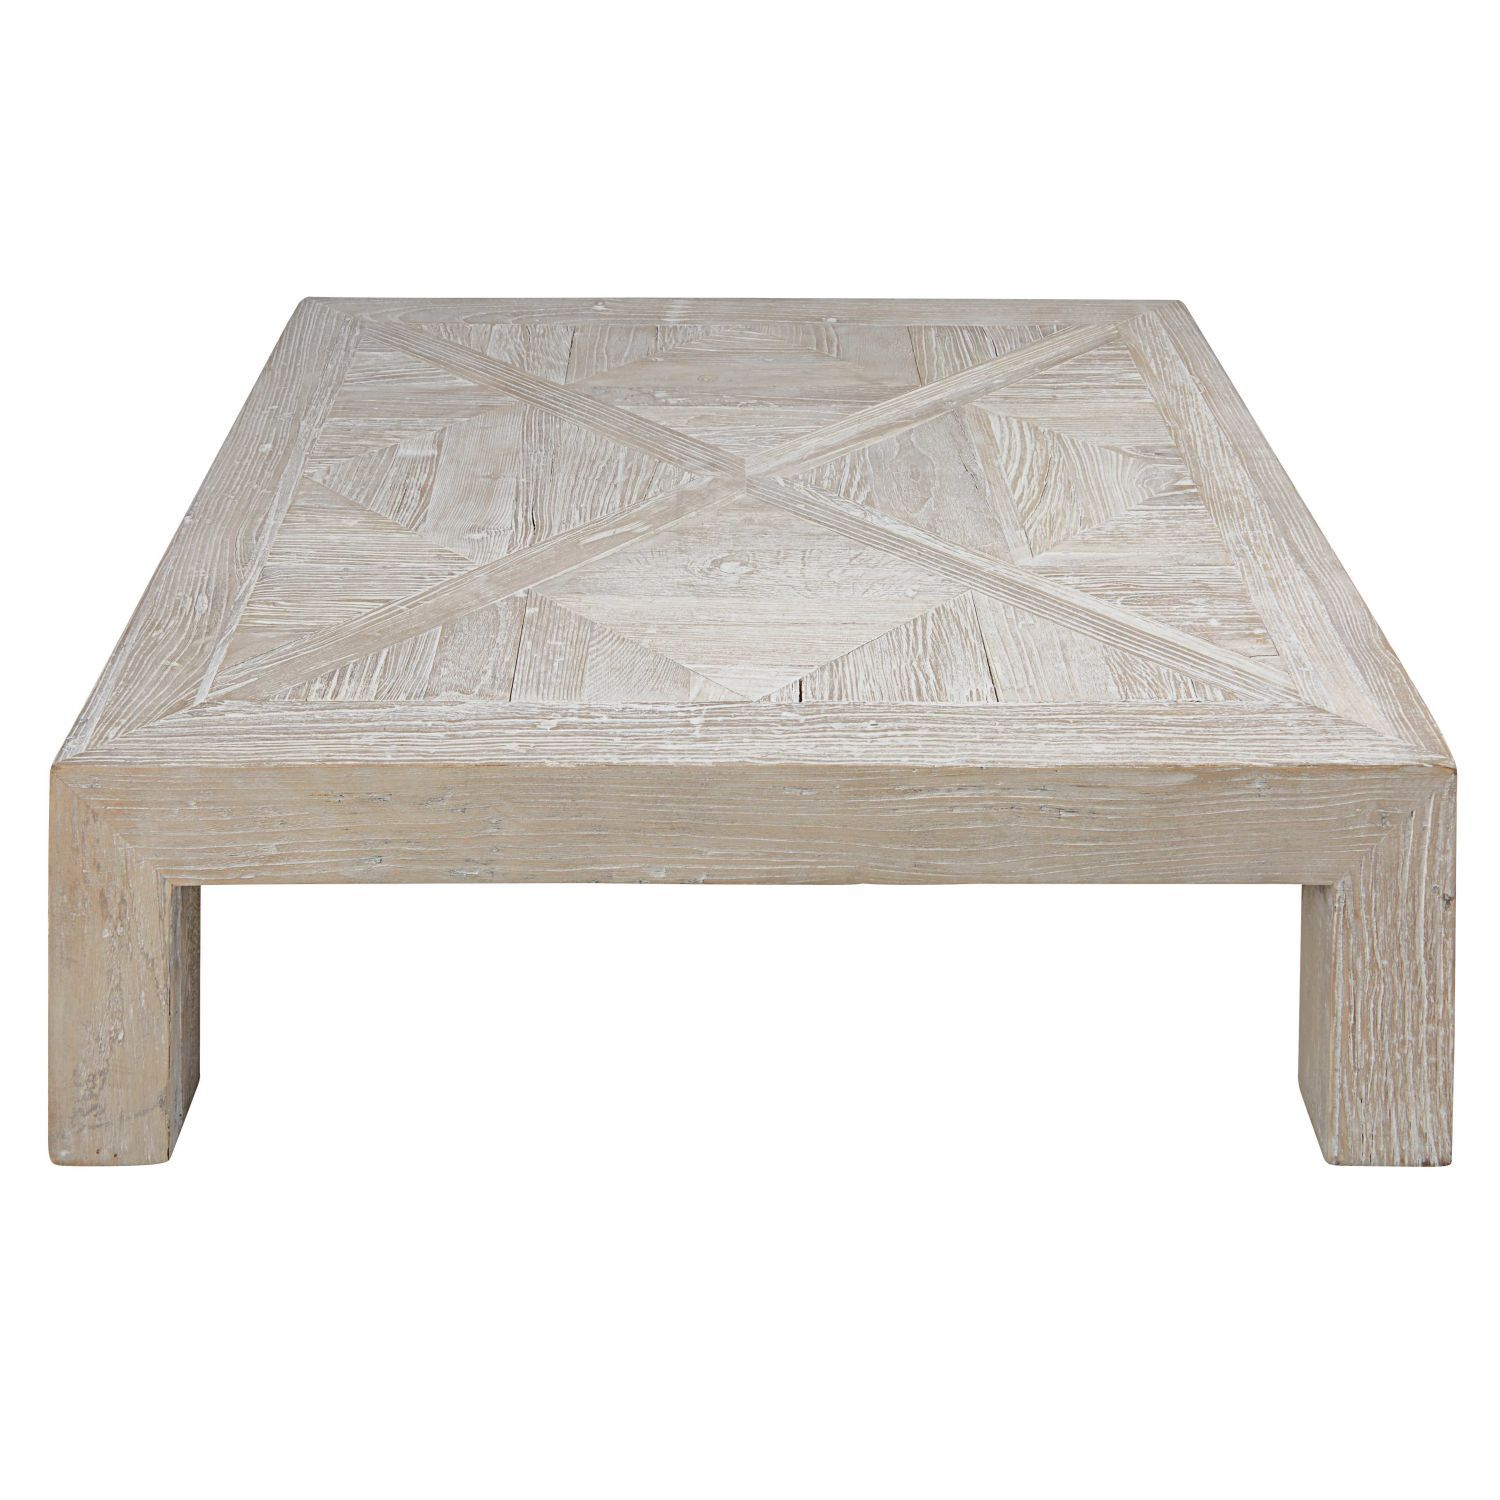 Table Basse En Orme Massif Recycle Blanchi Maisons Du Monde Table Basse Table Basse Indienne Deco Table Basse